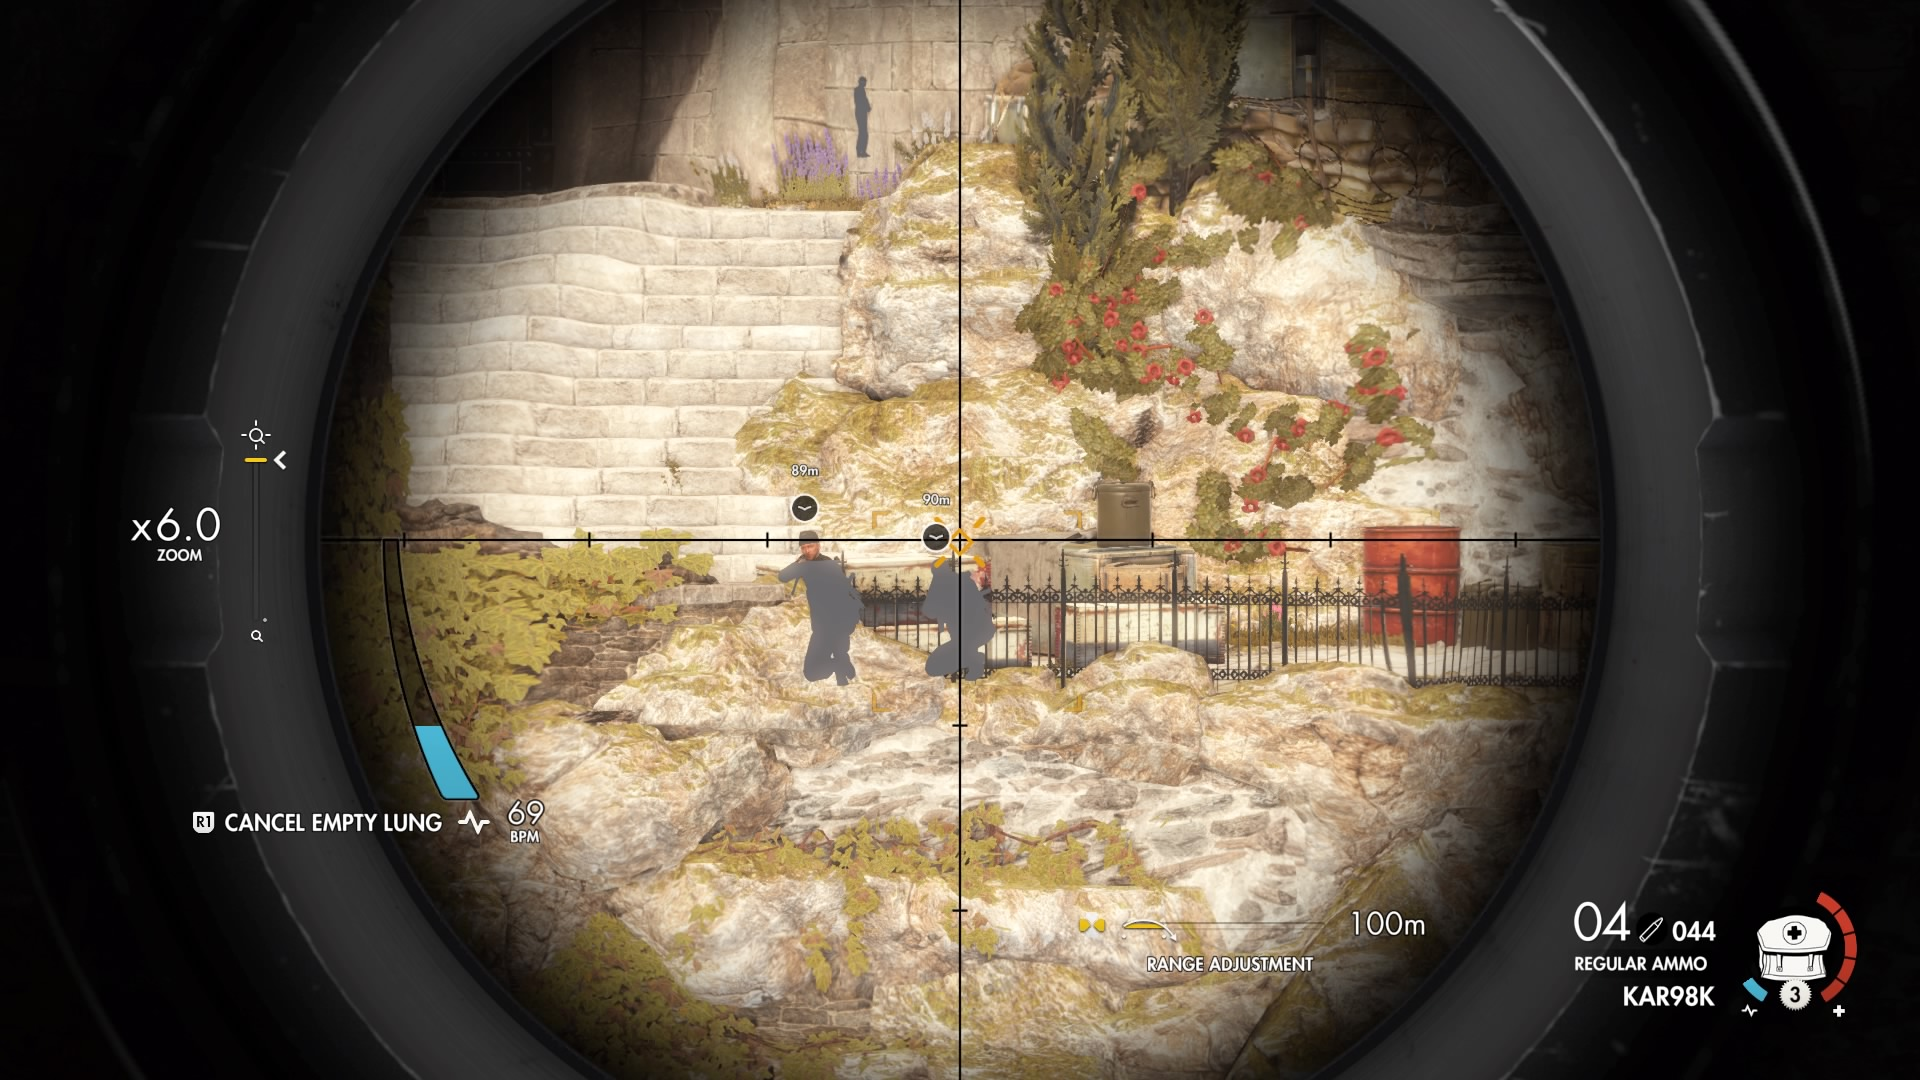 The player spends a lot of time scoping and tagging enemies during missions.